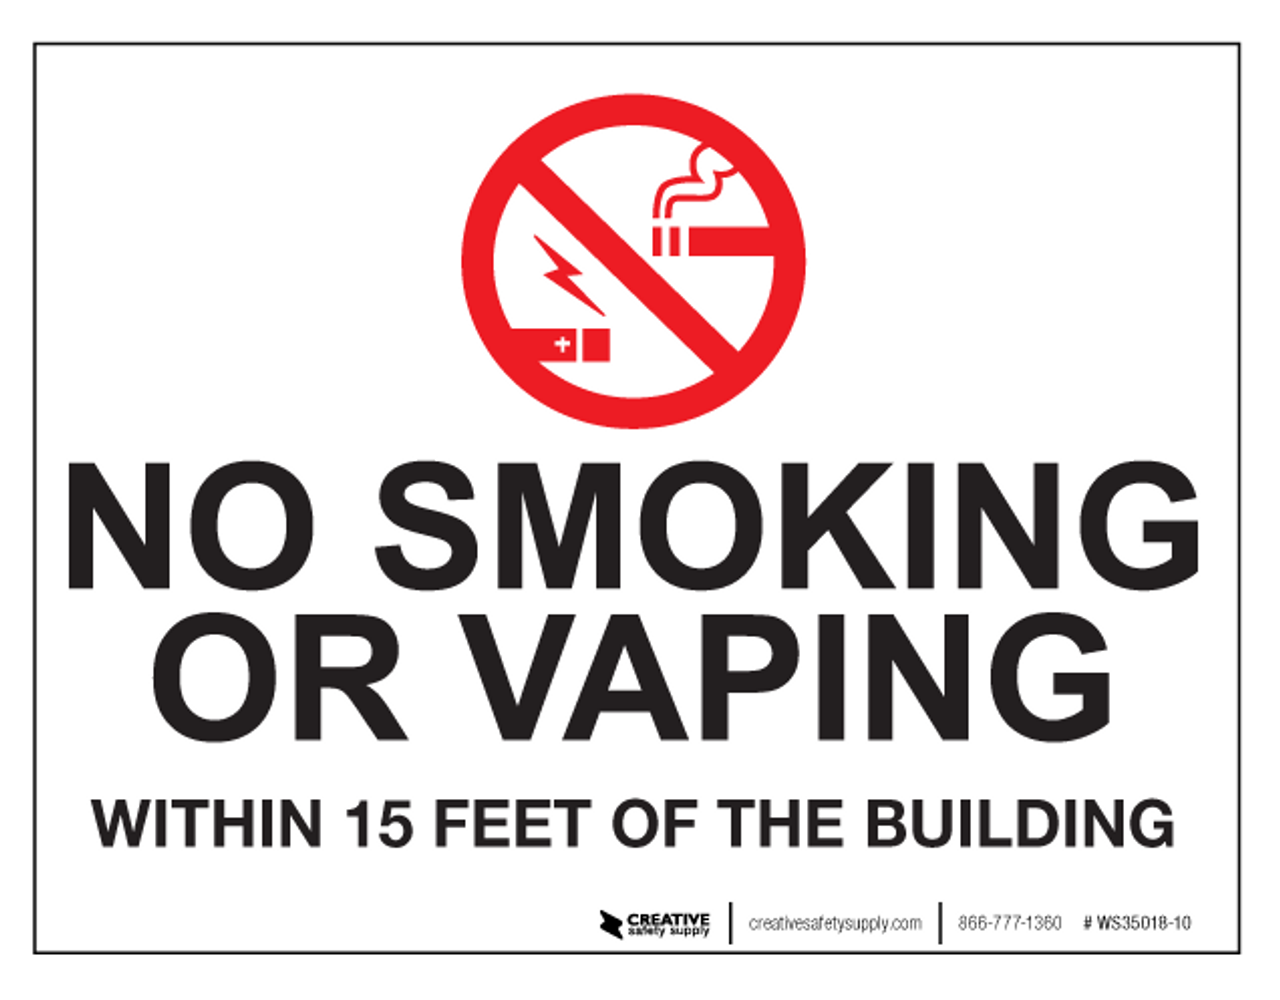 photo relating to No Smoking Sign Printable named No Smoking cigarettes/Vaping Inside 15 Ft - Wall Indicator